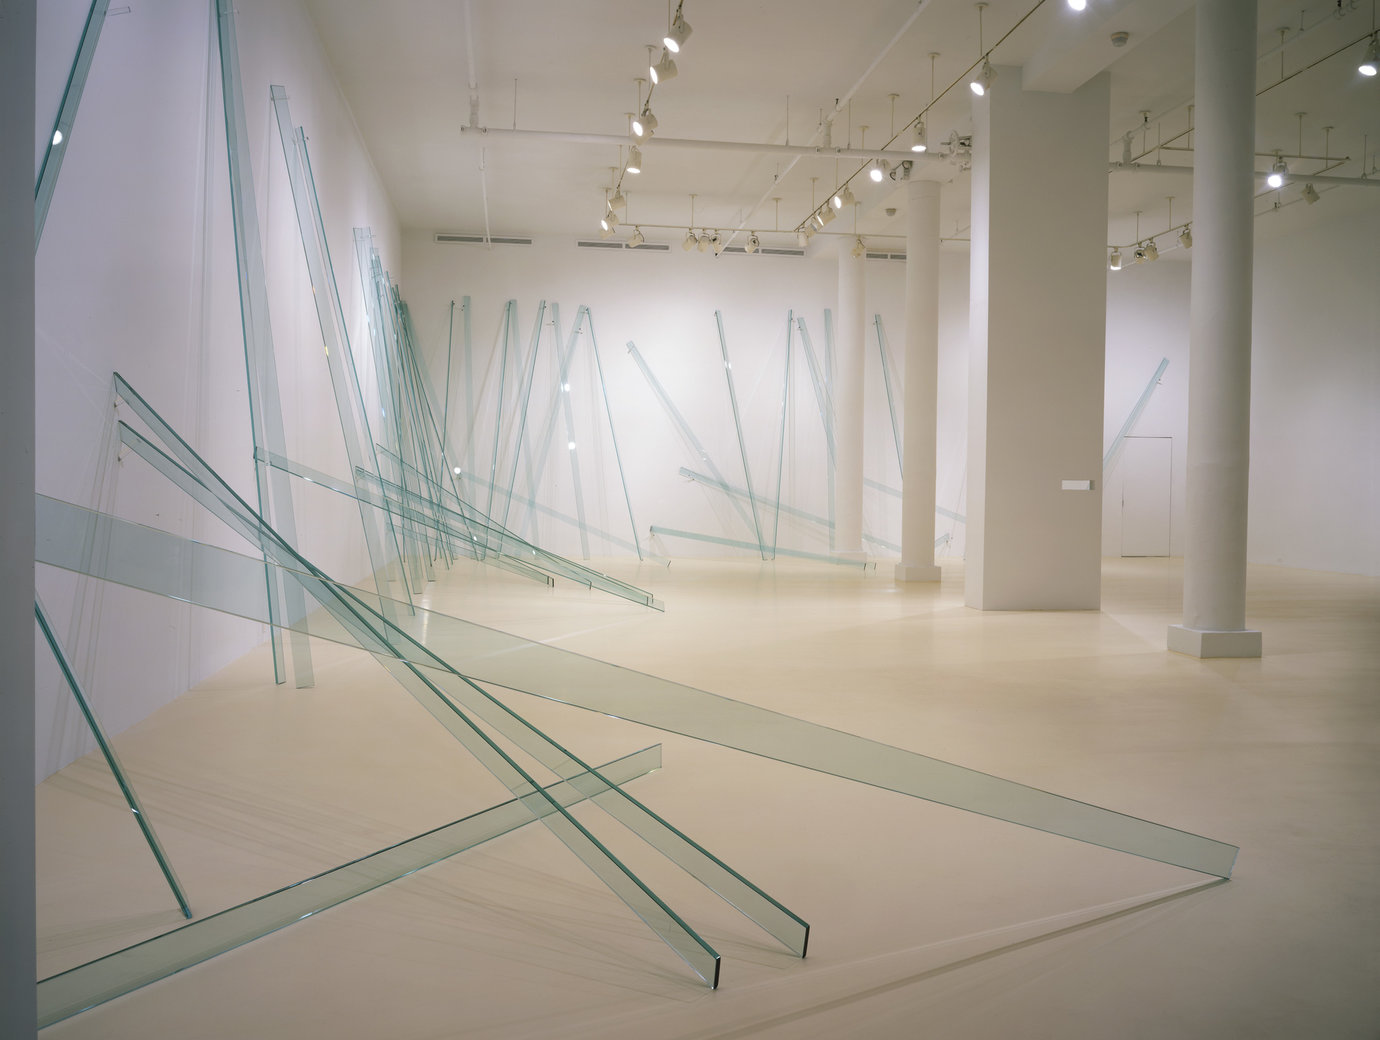 ", 2000. 50 glass units, two-way mirror and acrylic, glass: 168"" x 4"" x 5/8"" (426.7 x 10.2 x .63 cm), eachinstallation dimensions variable."